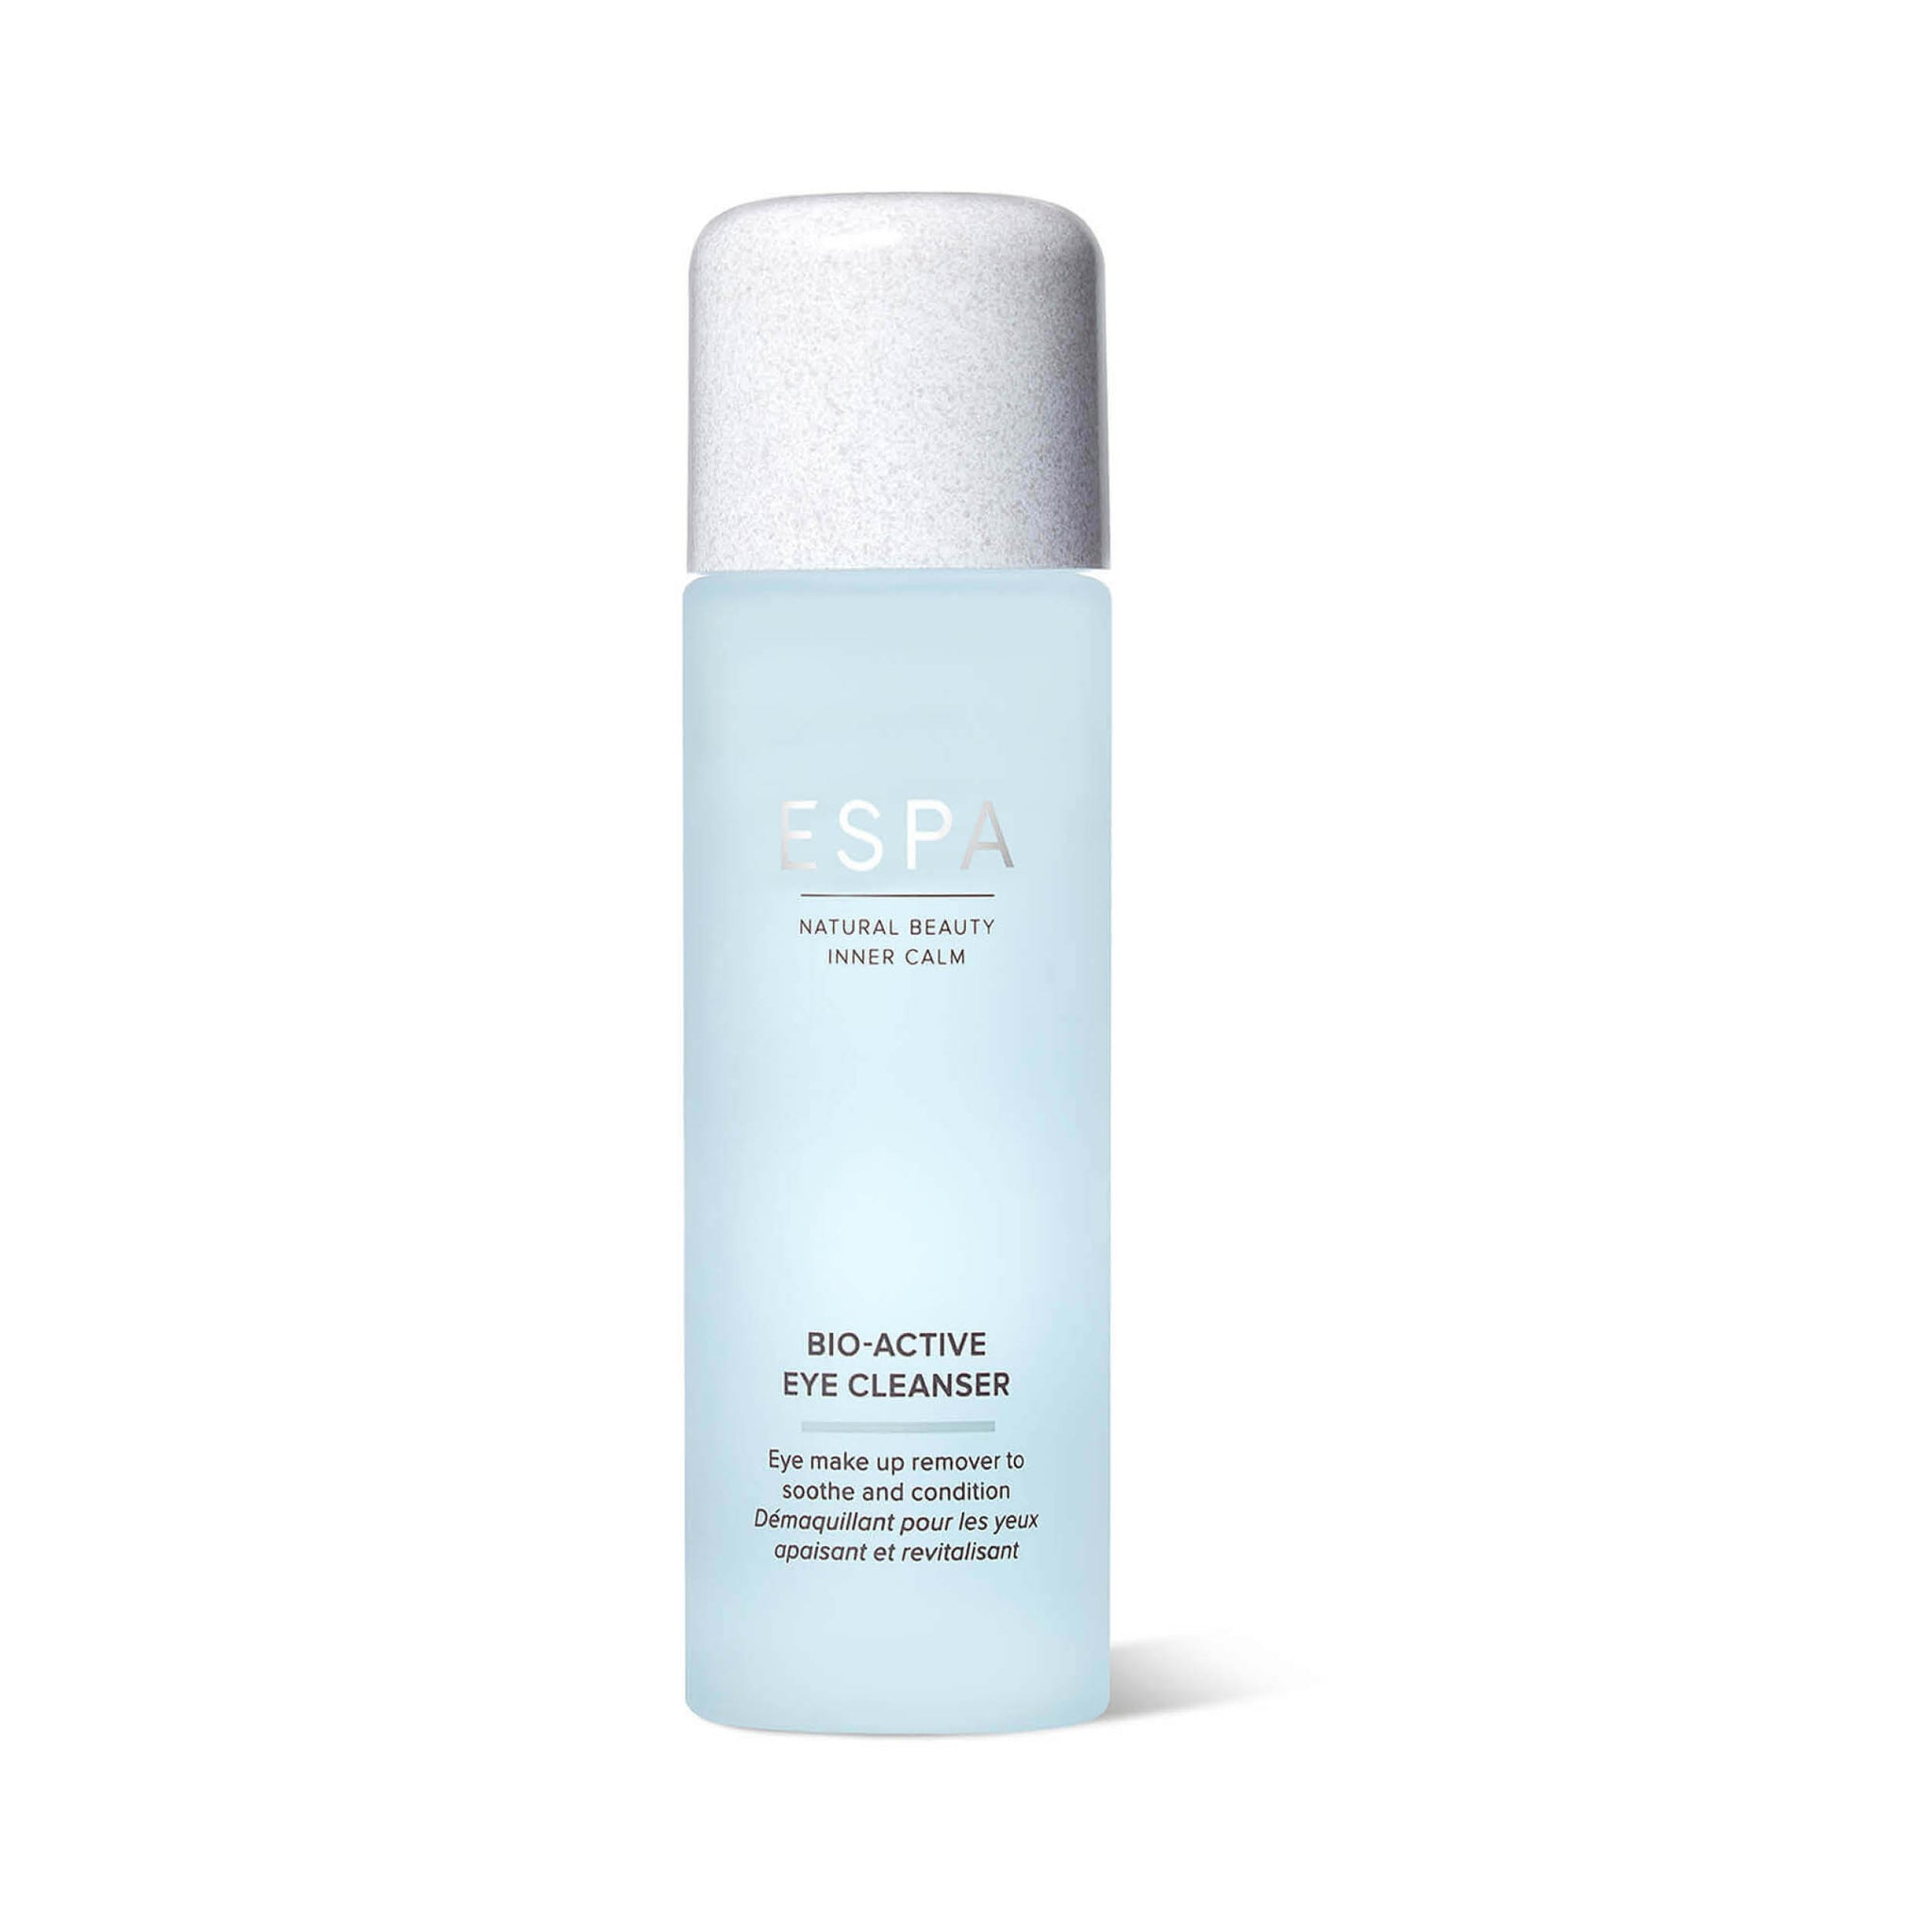 ESPA Bio-Active Eye Cleanser